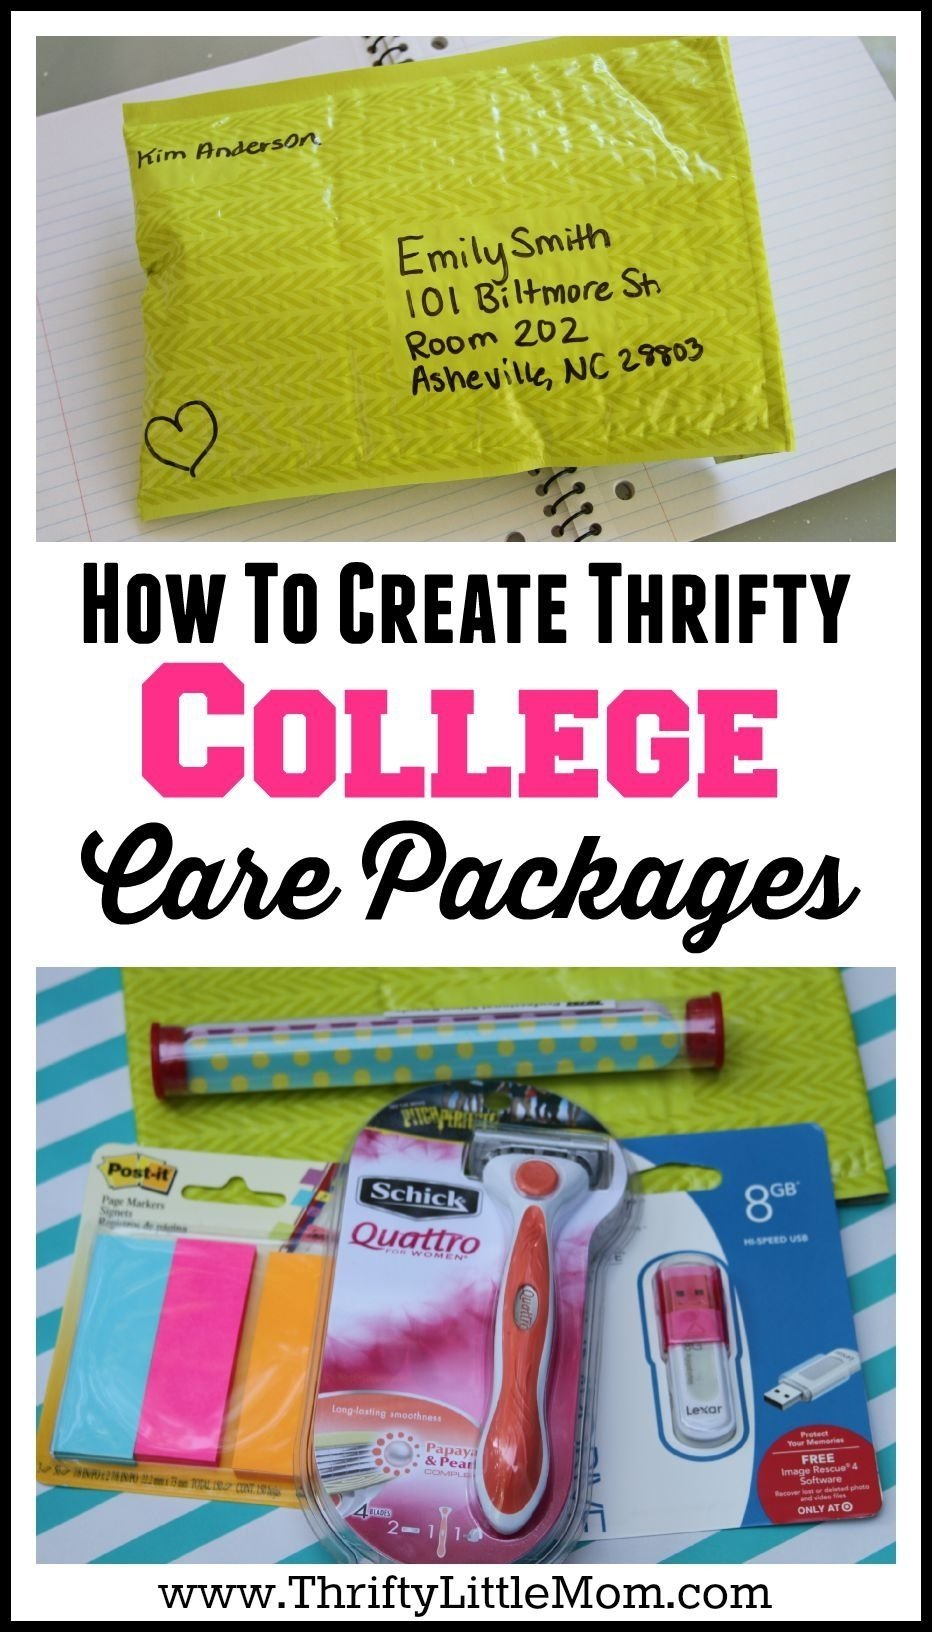 10 Stylish Care Package Ideas For College Girls creating thrifty college care packages hug college and create